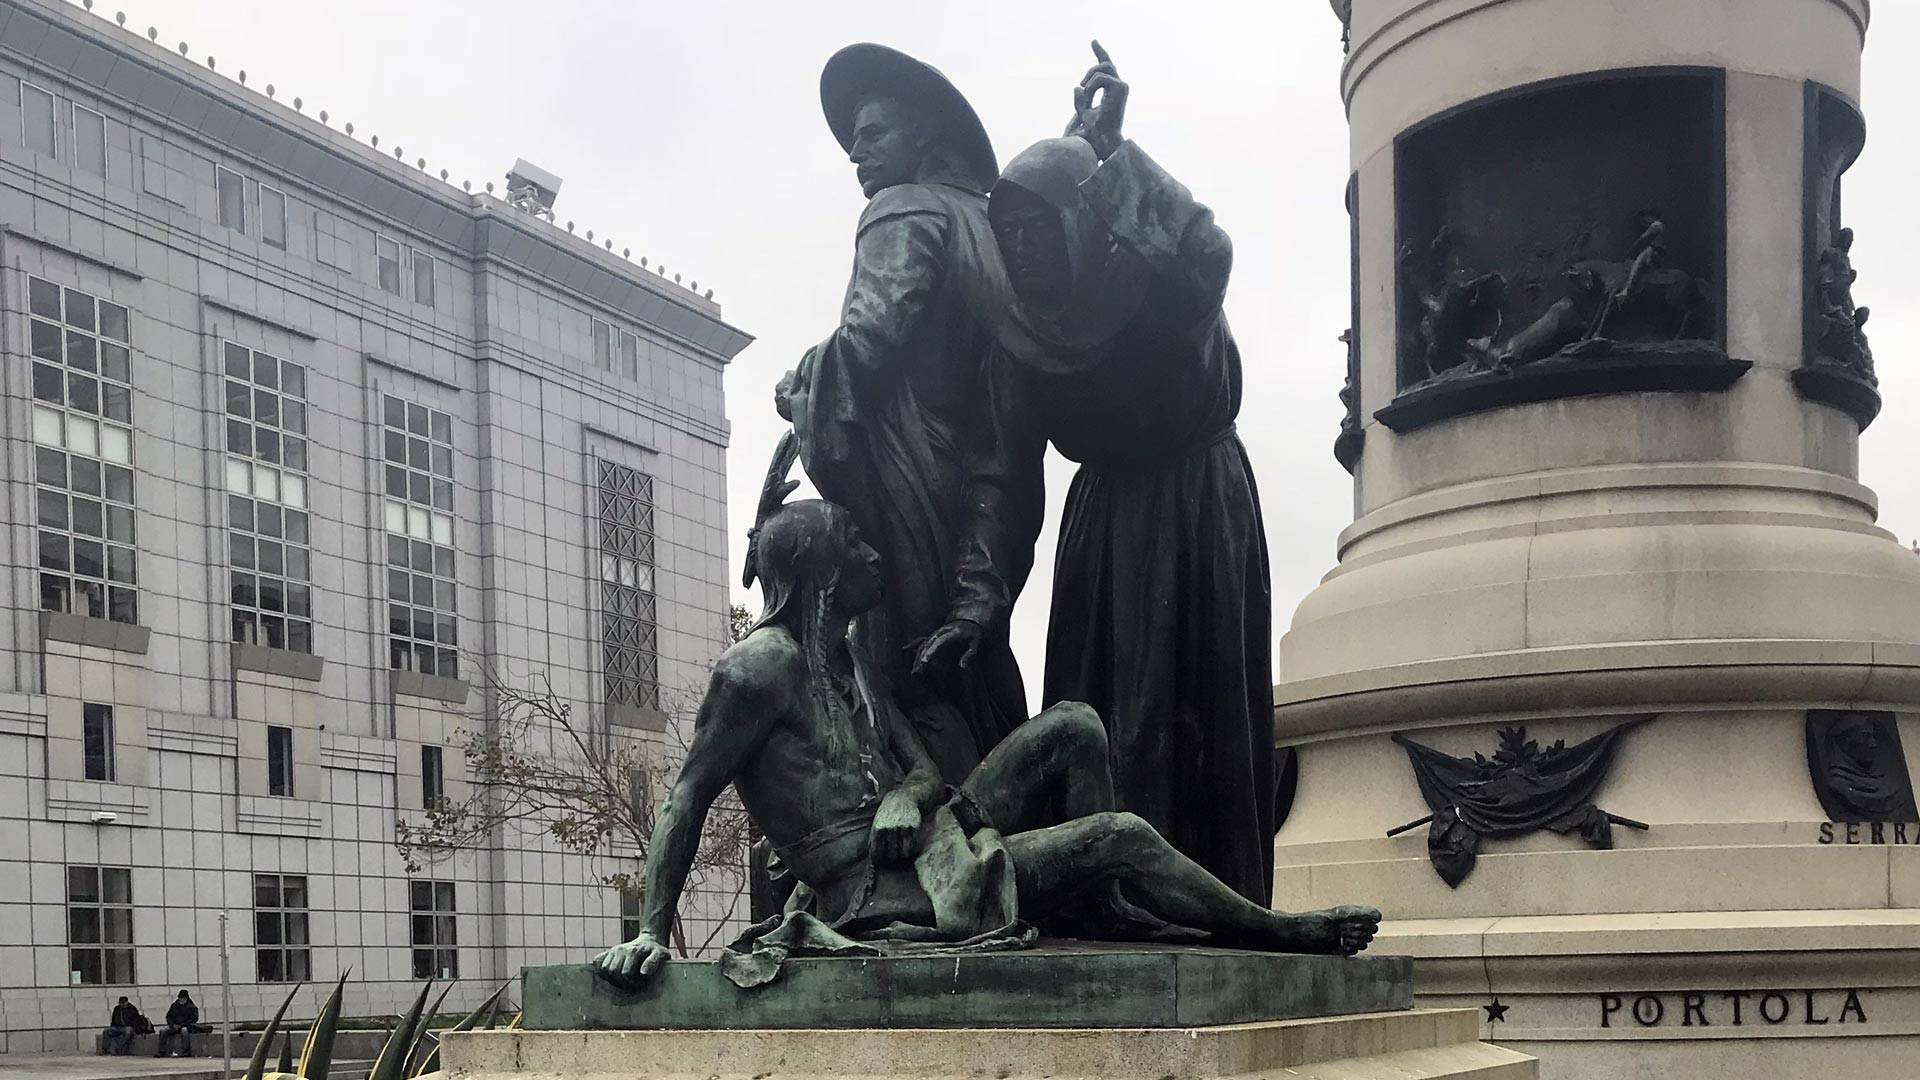 'Early Days,' part of the Pioneer Monument in San Francisco's Civic Center, will be removed in the wake of a Sept. 12 meeting at City Hall. Sam Lefebvre/KQED